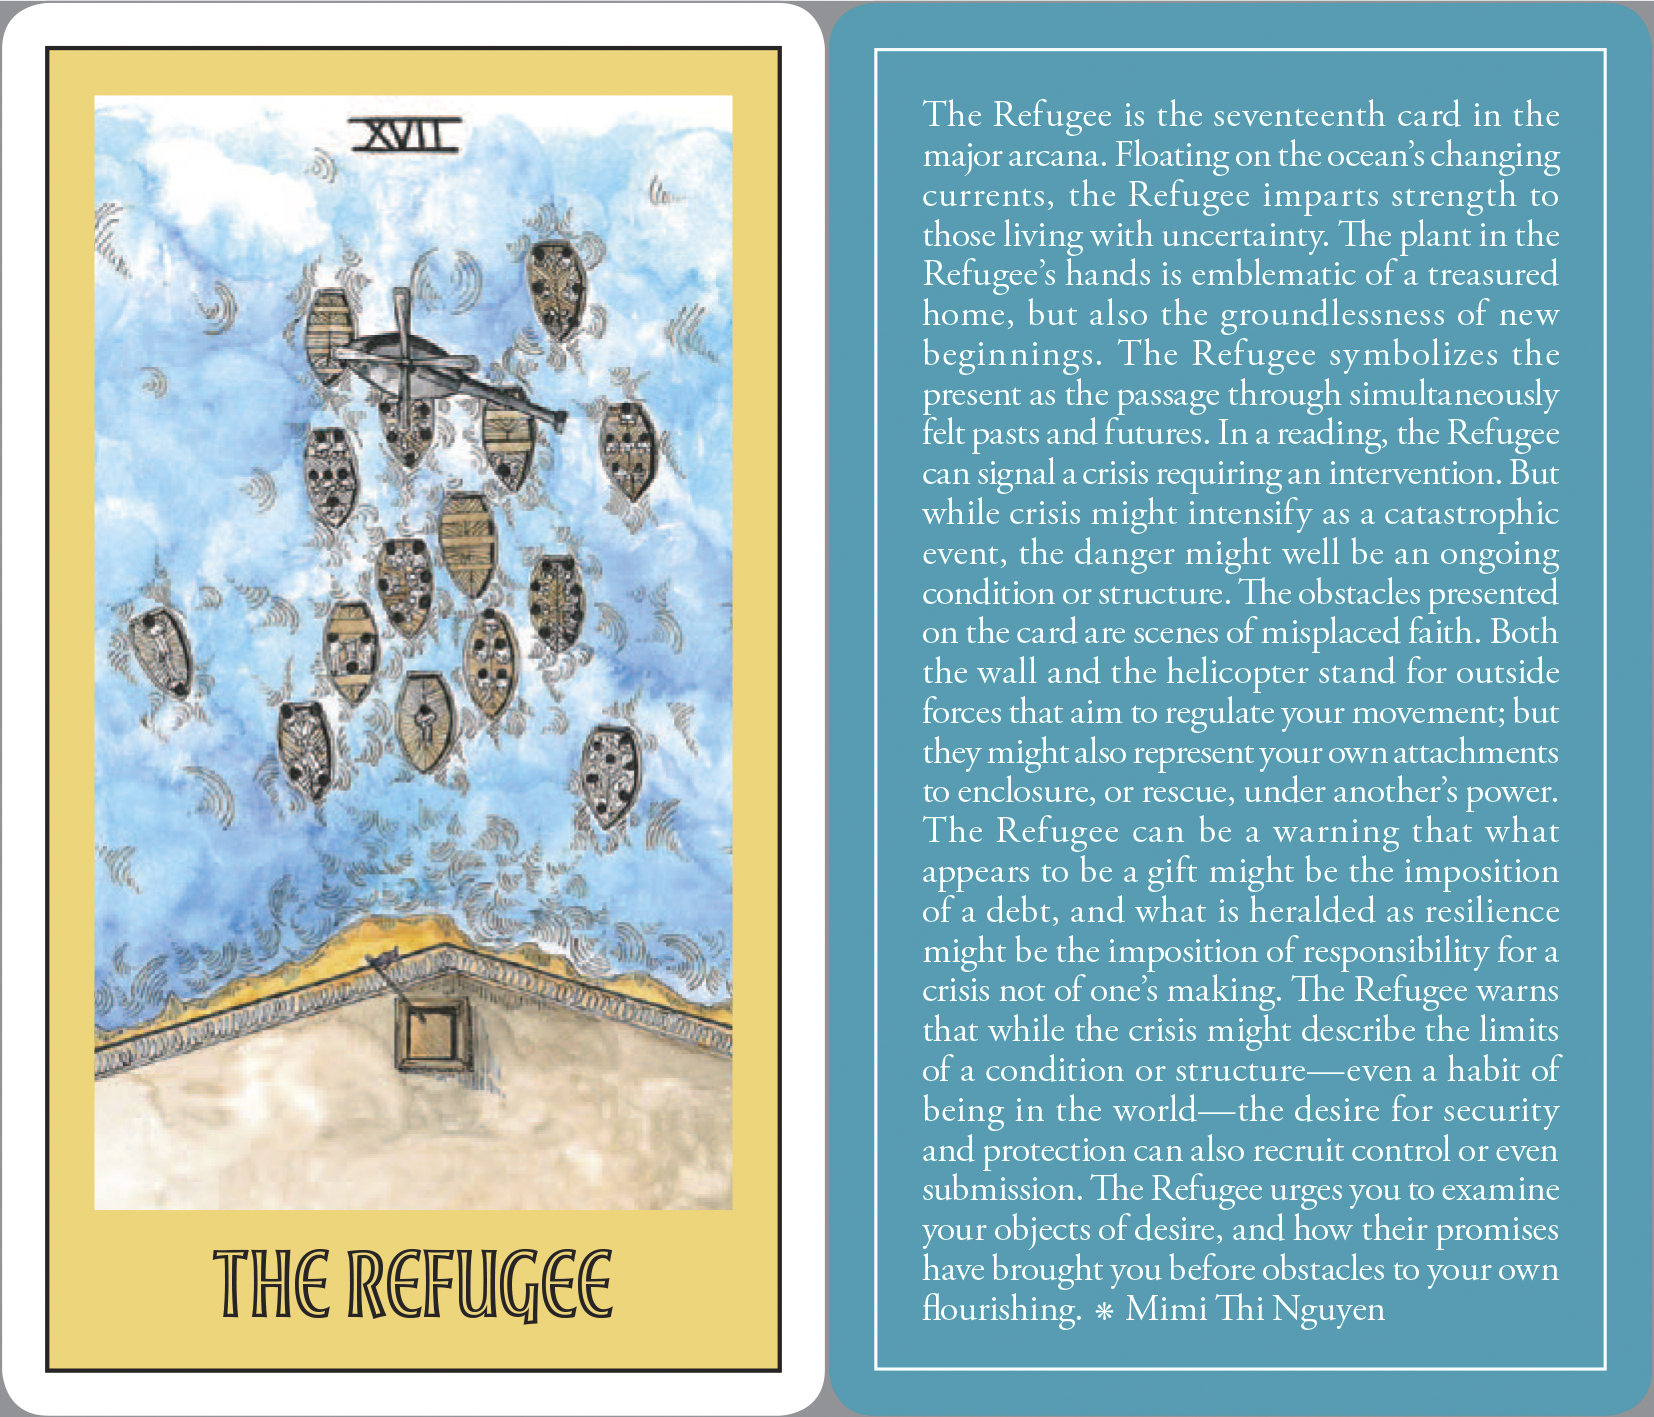 A tarot card labled 'The Refugee' from 'Open in Emergency: A Special Issue on Asian American Mental Health' by Mimi Khúc. The back of the card reads 'The Refugee is the seventeenth card in the major arcana. Floating onthe ocean's changing currents, the Refugee imparts strength to theose living with uncertainty. The plant in the Refugee's hands is emblematic of a treasured home, but also the groundlessness of new beginnings. The Refugee symbolizes the present as the passage through simultaneously felt pasts and futures. In a reading, the Refugee can signal a crisis requiring an intervention. But whil crisis might intensify as a catastrophic event, the danger might well be an ongoing condition or structure. The obstacles presented on the card are scenes of misplaced faith, Both the wall and the helicopter stand for outside forces that aim to regulate your movement; but they might also represent your own attachments to enclosure , or rescue, under another's power. The Refugee can be a warning that what appears to be a gift might be the imposition of a debt, and what is heralded as a resilience might be the imposition of responsibility for a crisis not of one's making. The Refugee warns that while the crisis might describe the limits of a condition or structure--even a habit of being in the world--the desire for security and protection can also recruit control or even submission. The Refugee urges you to examine your objects of desire, and how their promises have brought you before obstacles to your own flourishing.